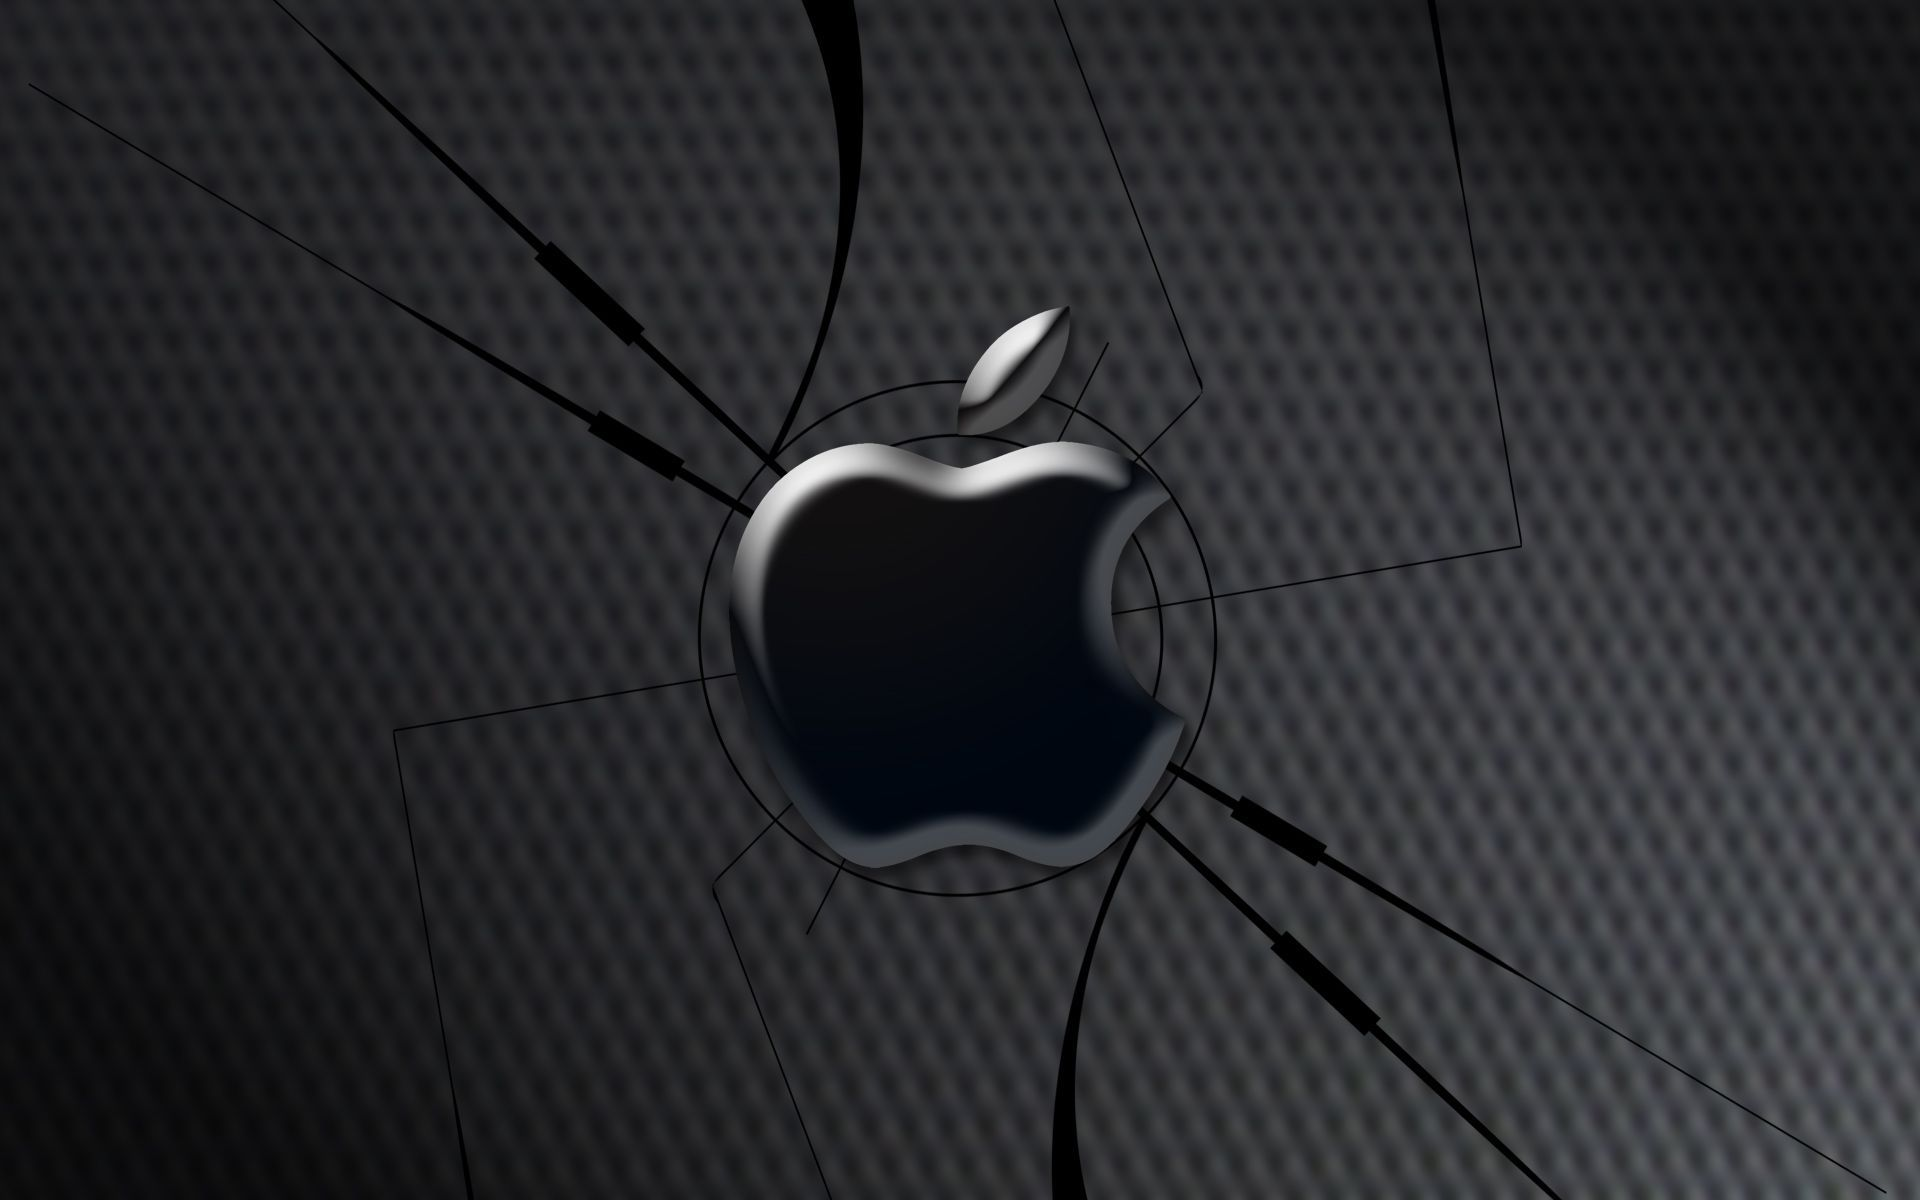 apple black wallpaper hd download | download wallpaper | pinterest